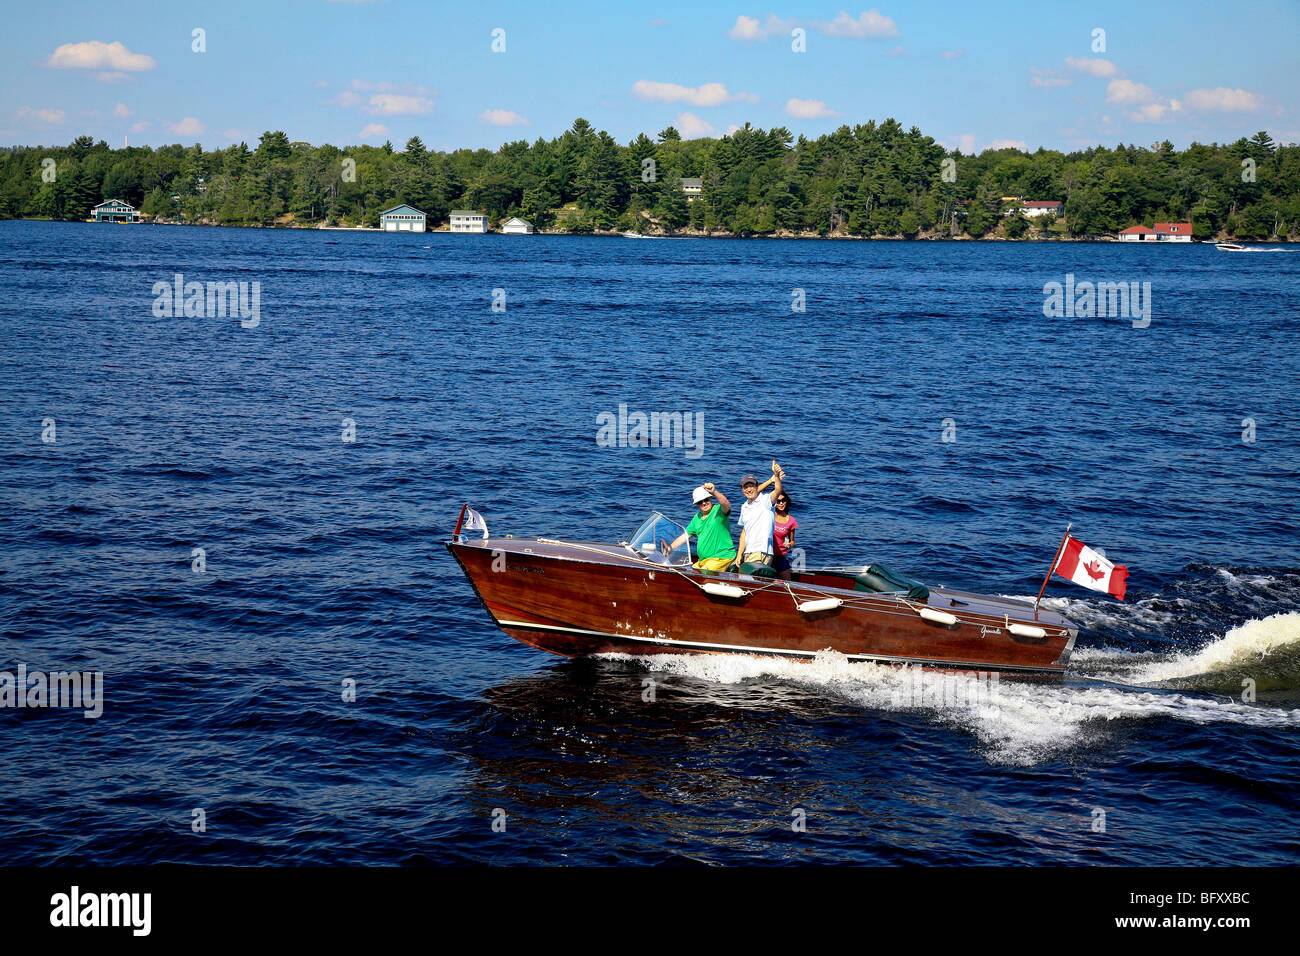 Family boating fun on lake in Cottage Country in the Summer on Lake Muskoka in Gravenhurst,Ontario;Canada - Stock Image